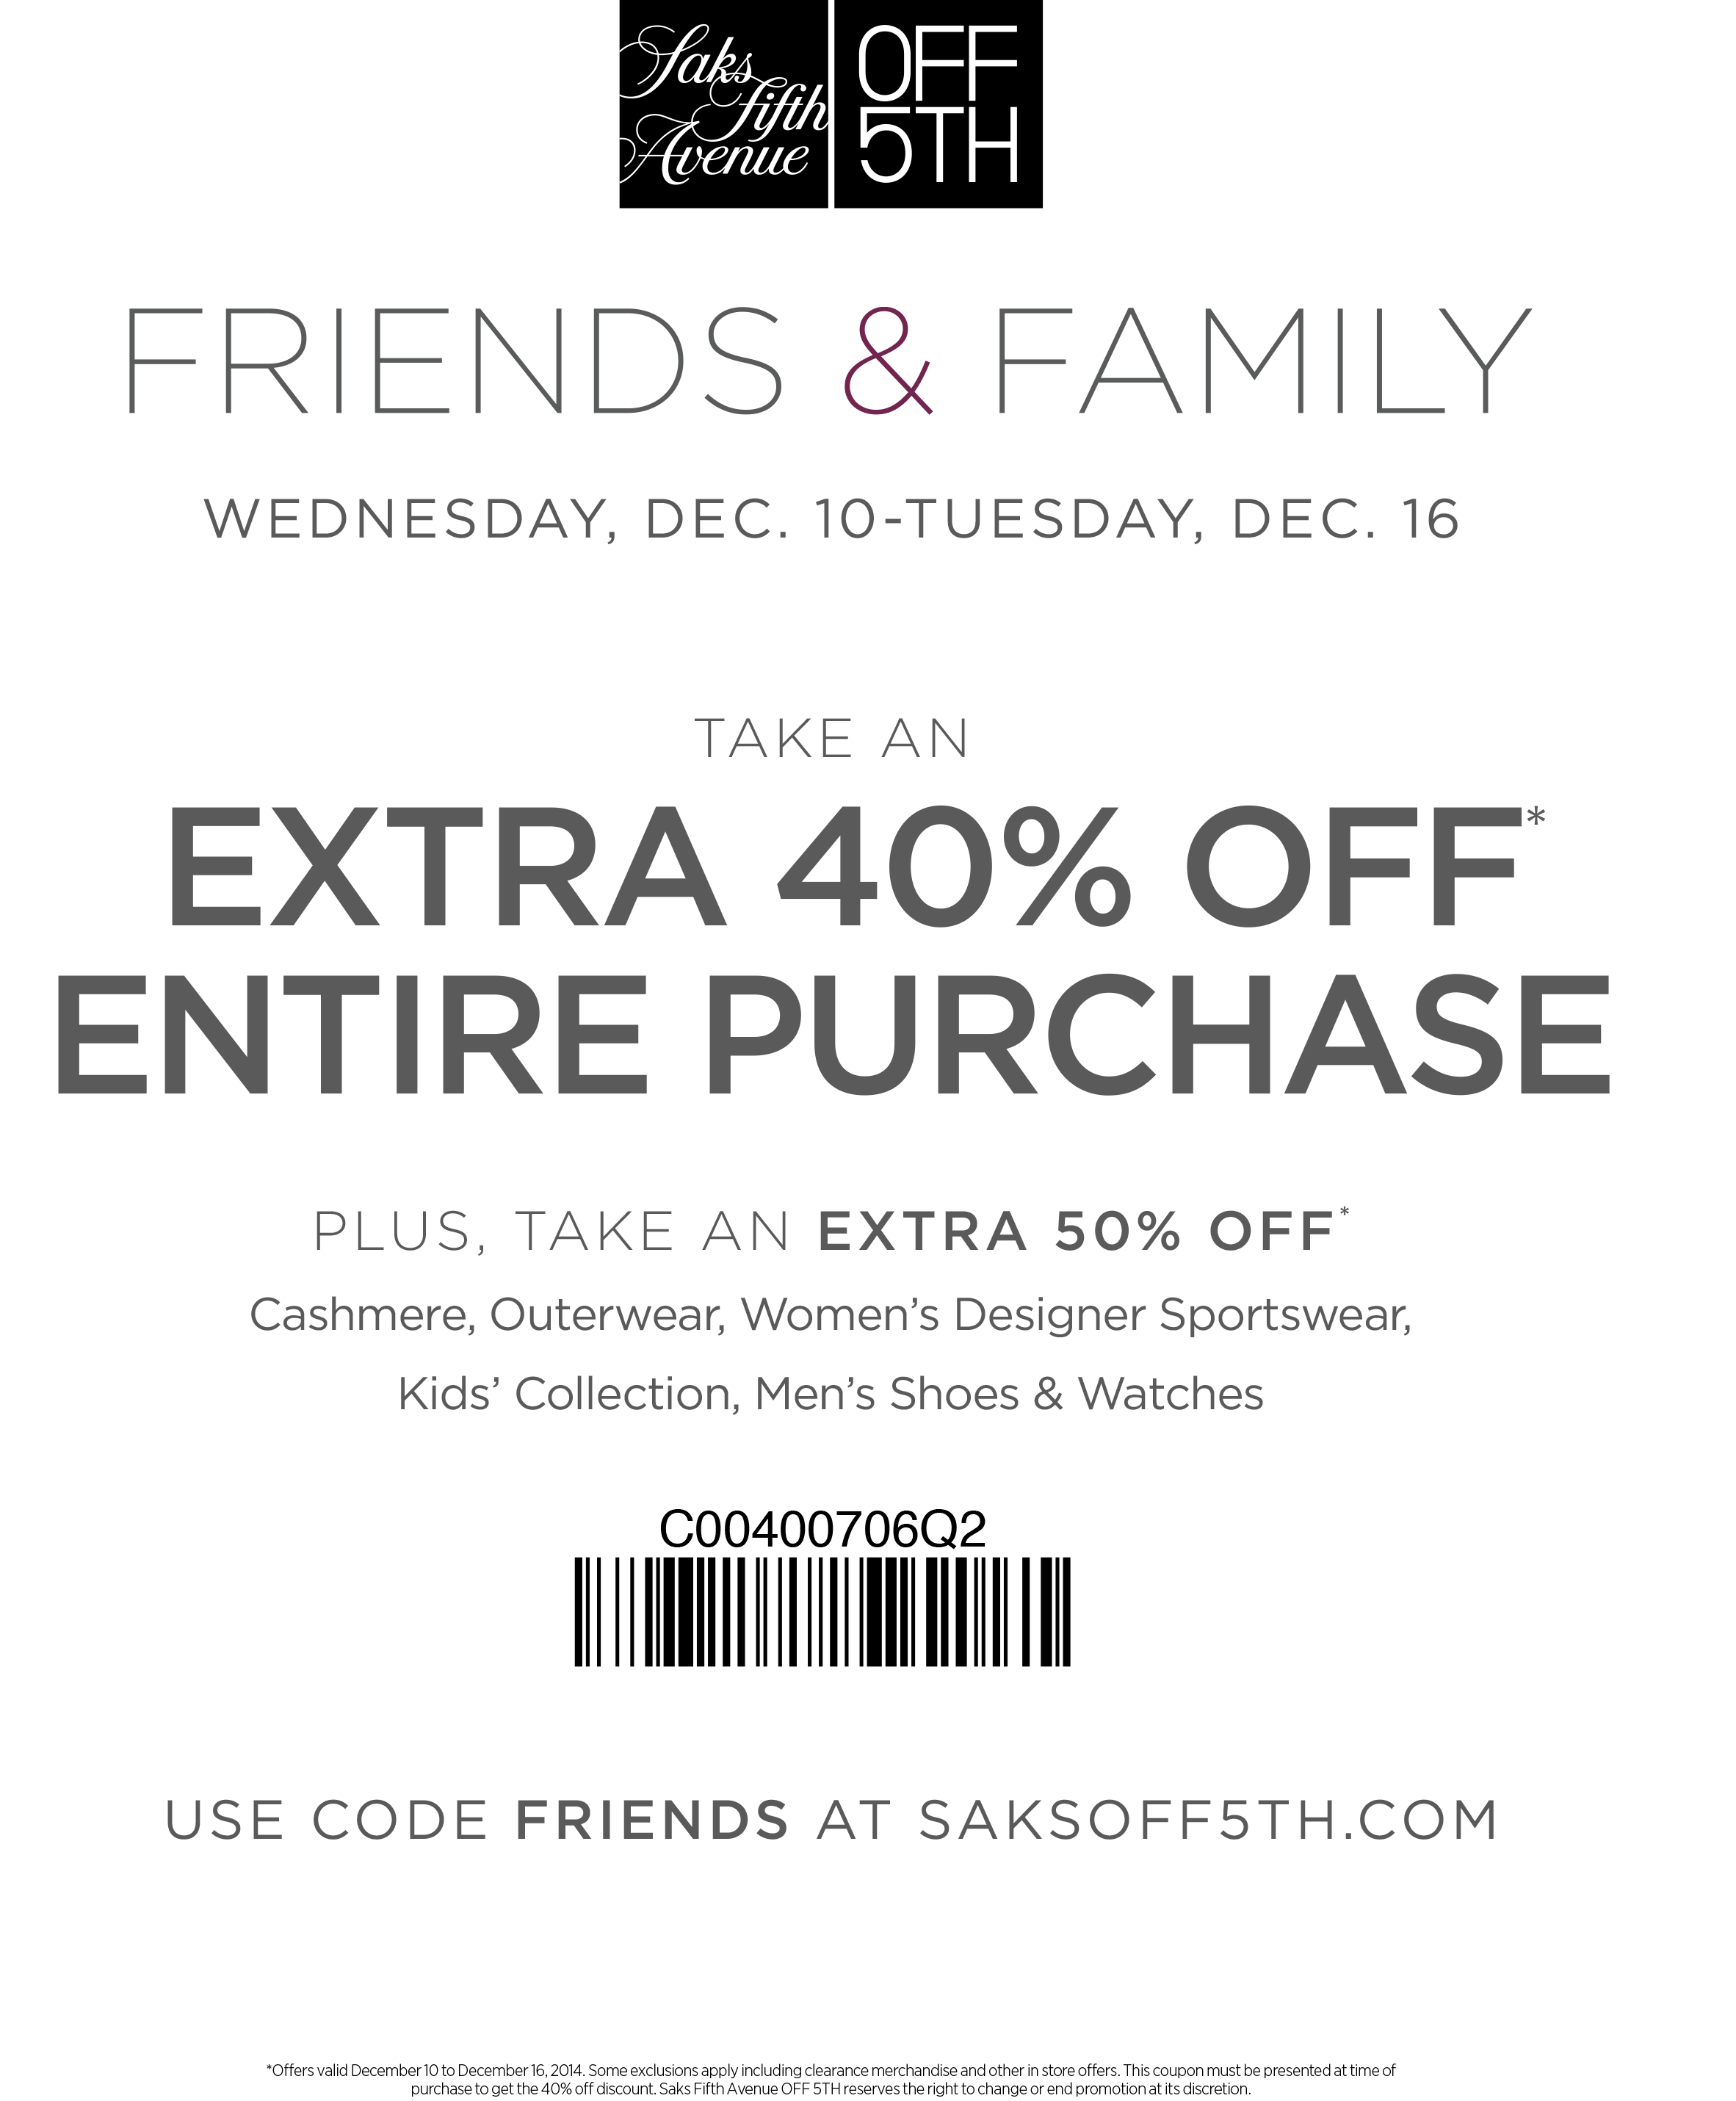 OFF 5TH Coupon December 2016 Extra 40% off everything at Saks OFF 5TH, or online via promo code FRIENDS